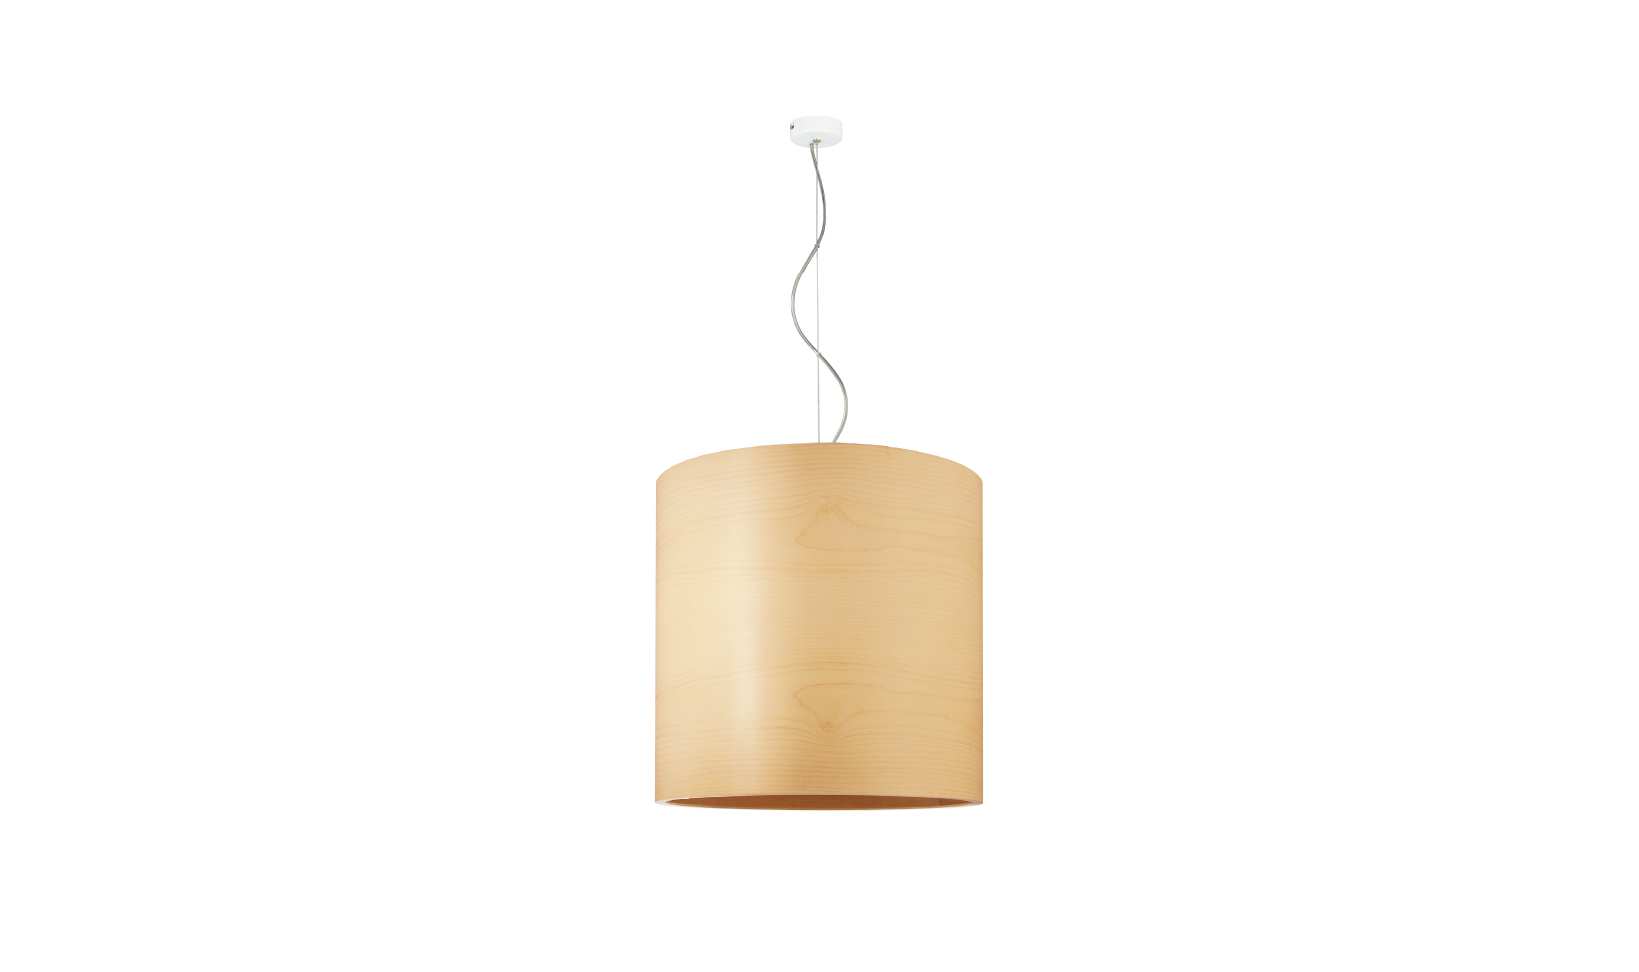 dreizehngrad pendant lamp model Funk 40/40P maple veneer lamp design lamp